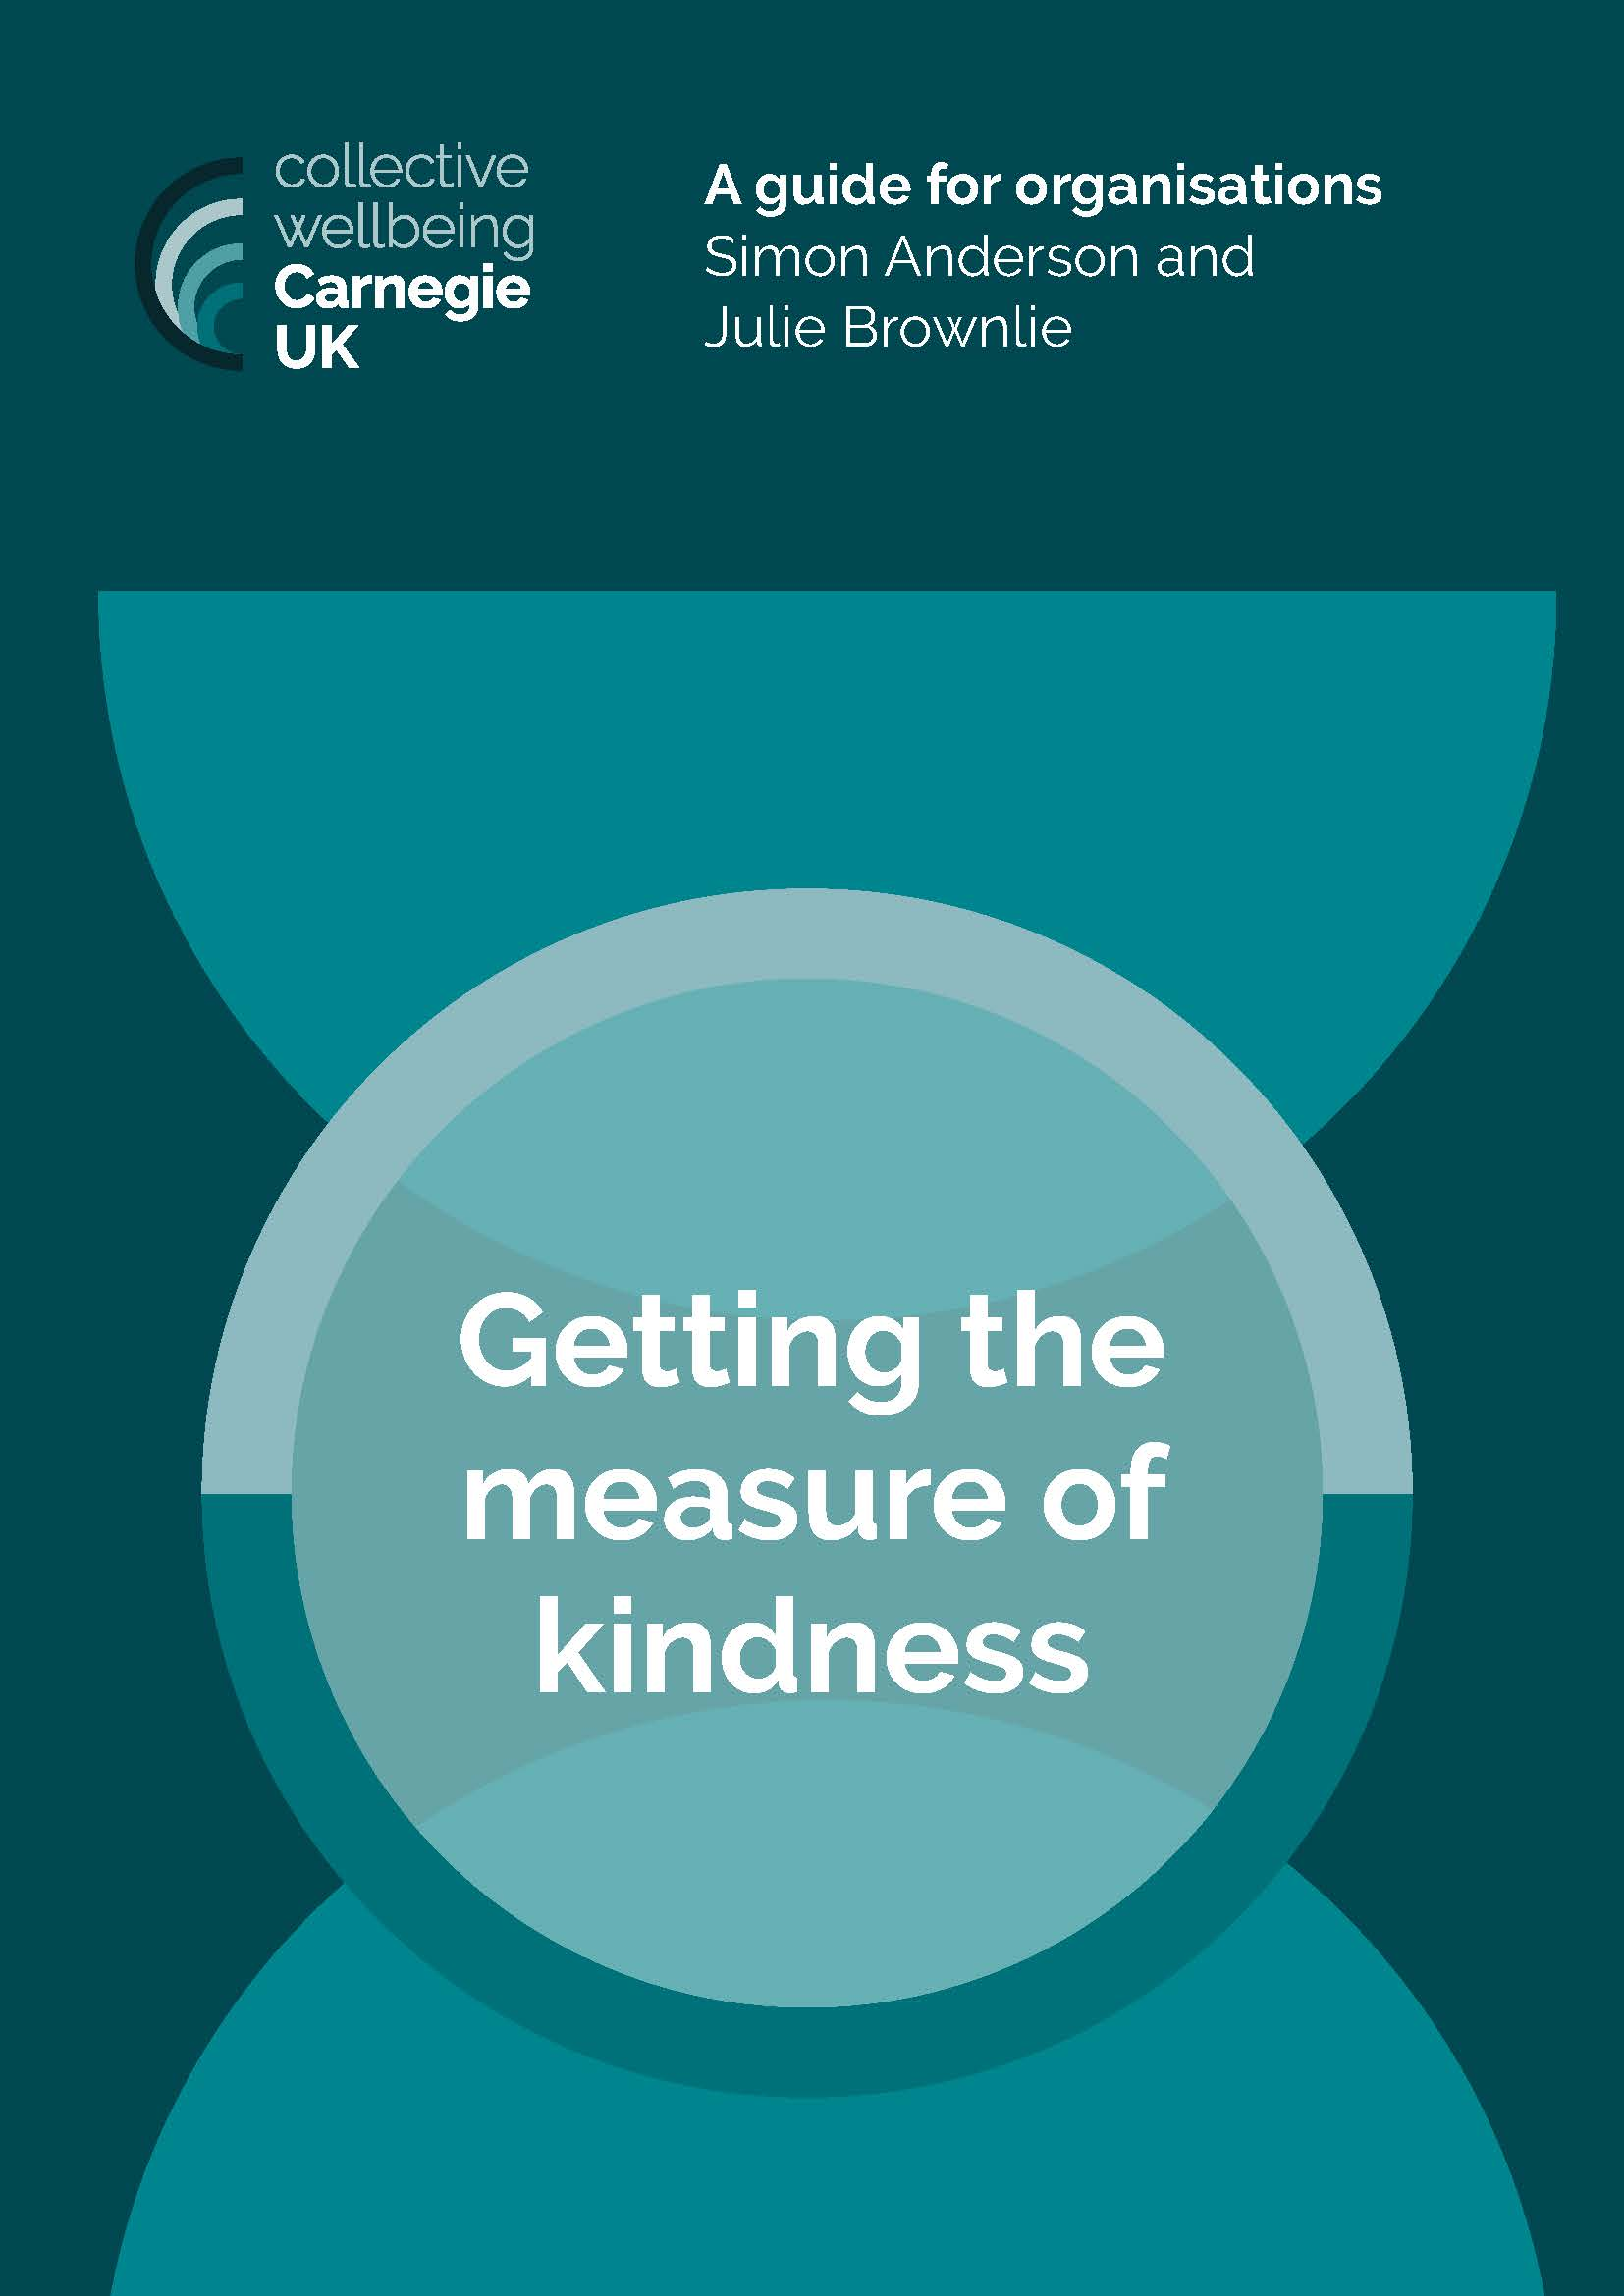 Getting the measure of kindness: A guide for organisations